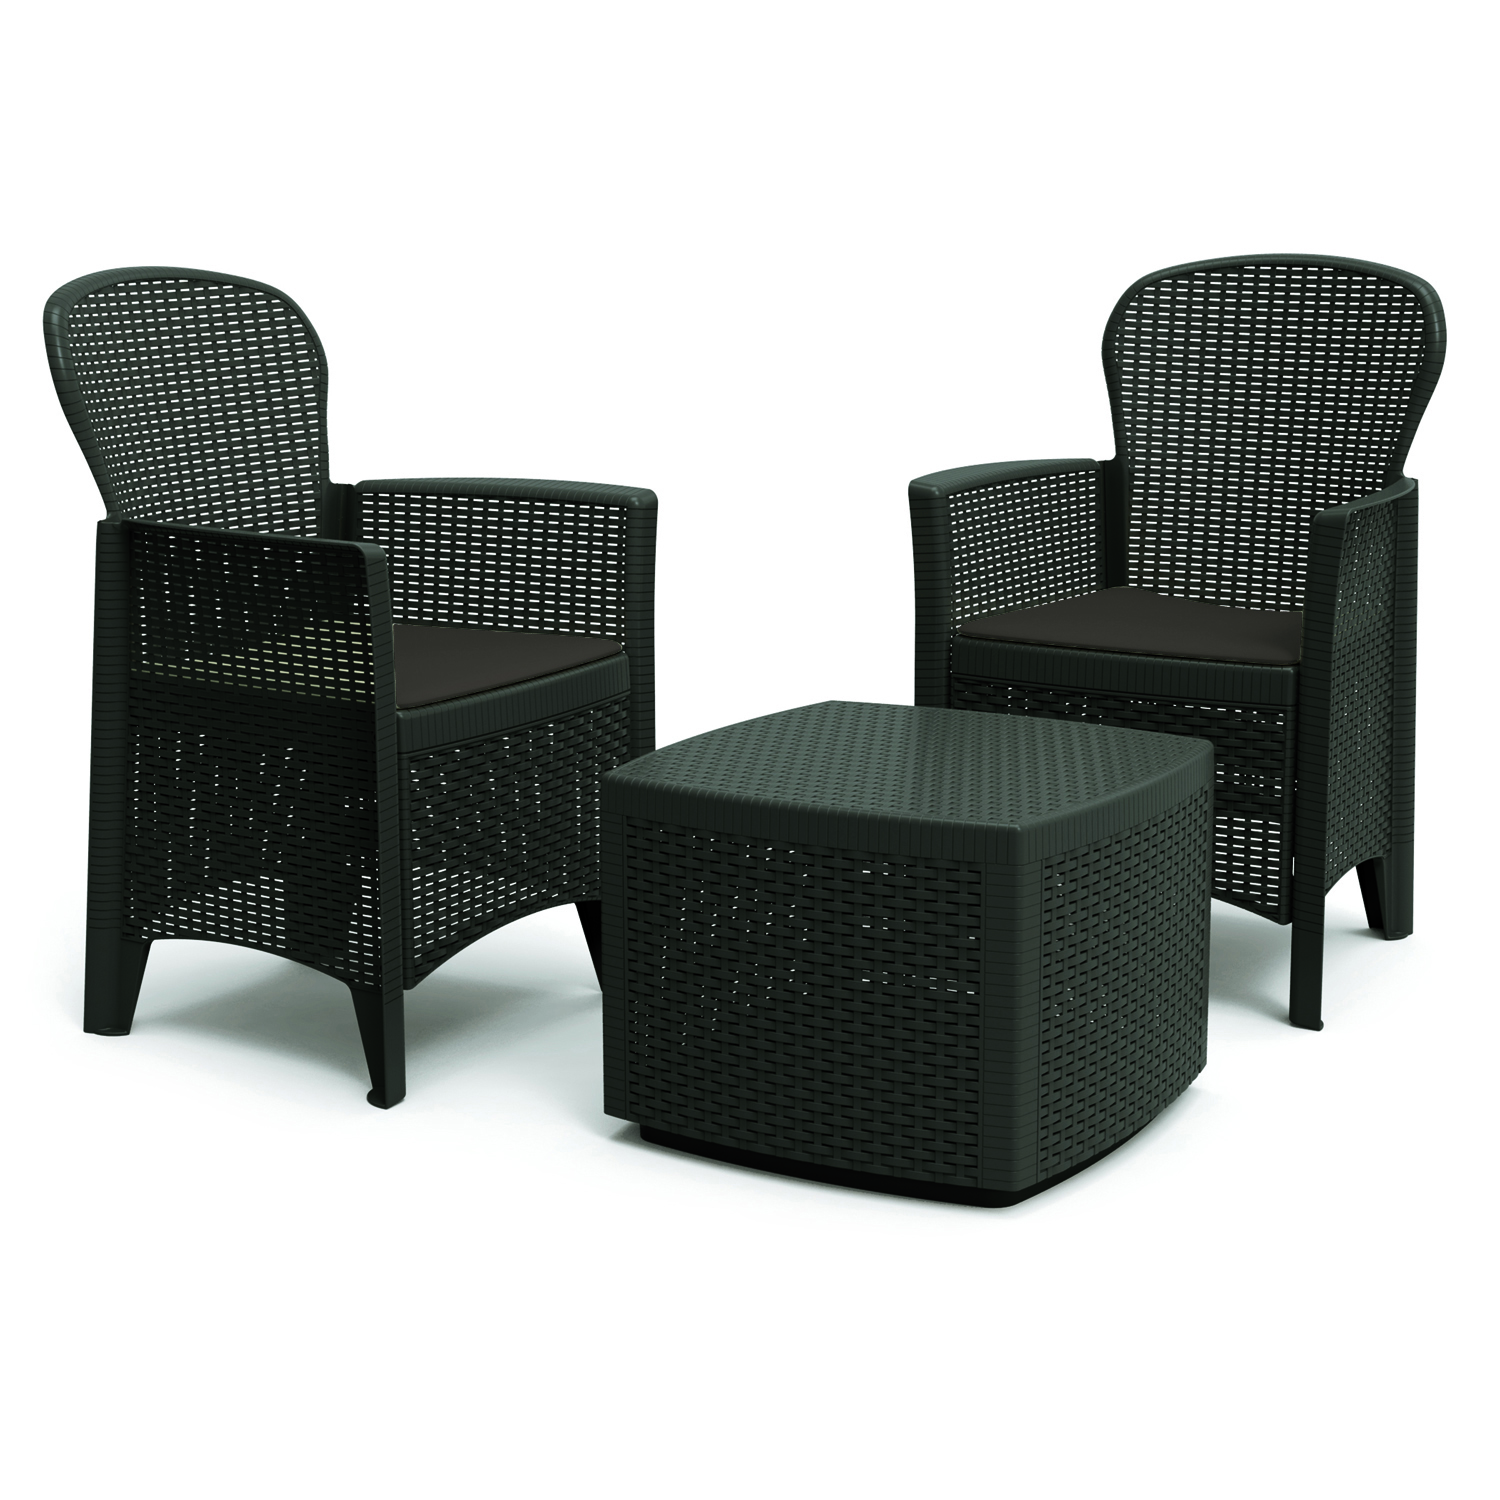 SICILY SIDE TABLE WITH 2 SICILY CHAIRS SET ANTHRACITE